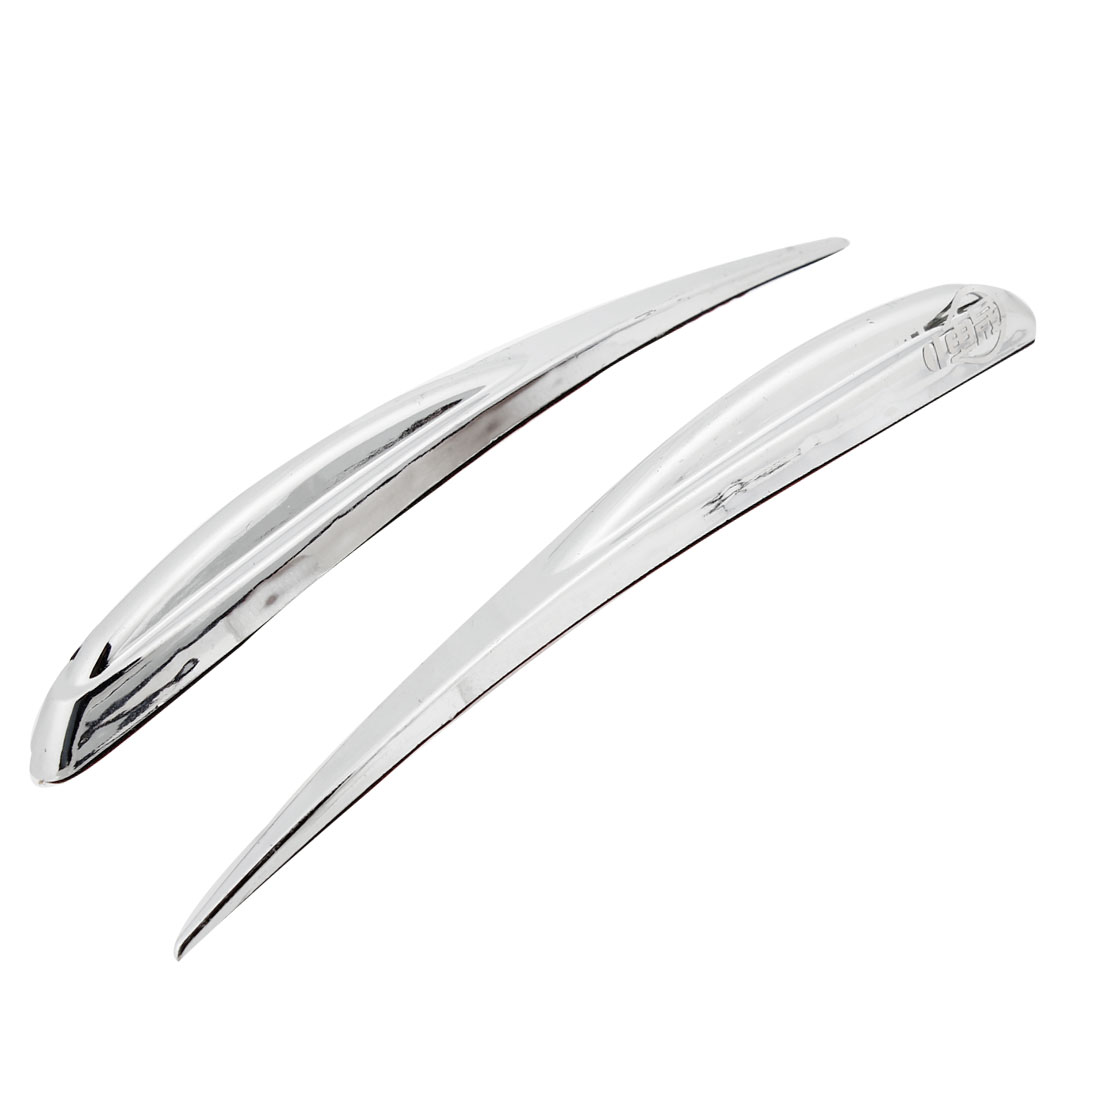 2 Pcs Silver Tone Plastic Adhesive Bank Car Edge Safety Bumper Guard Protector